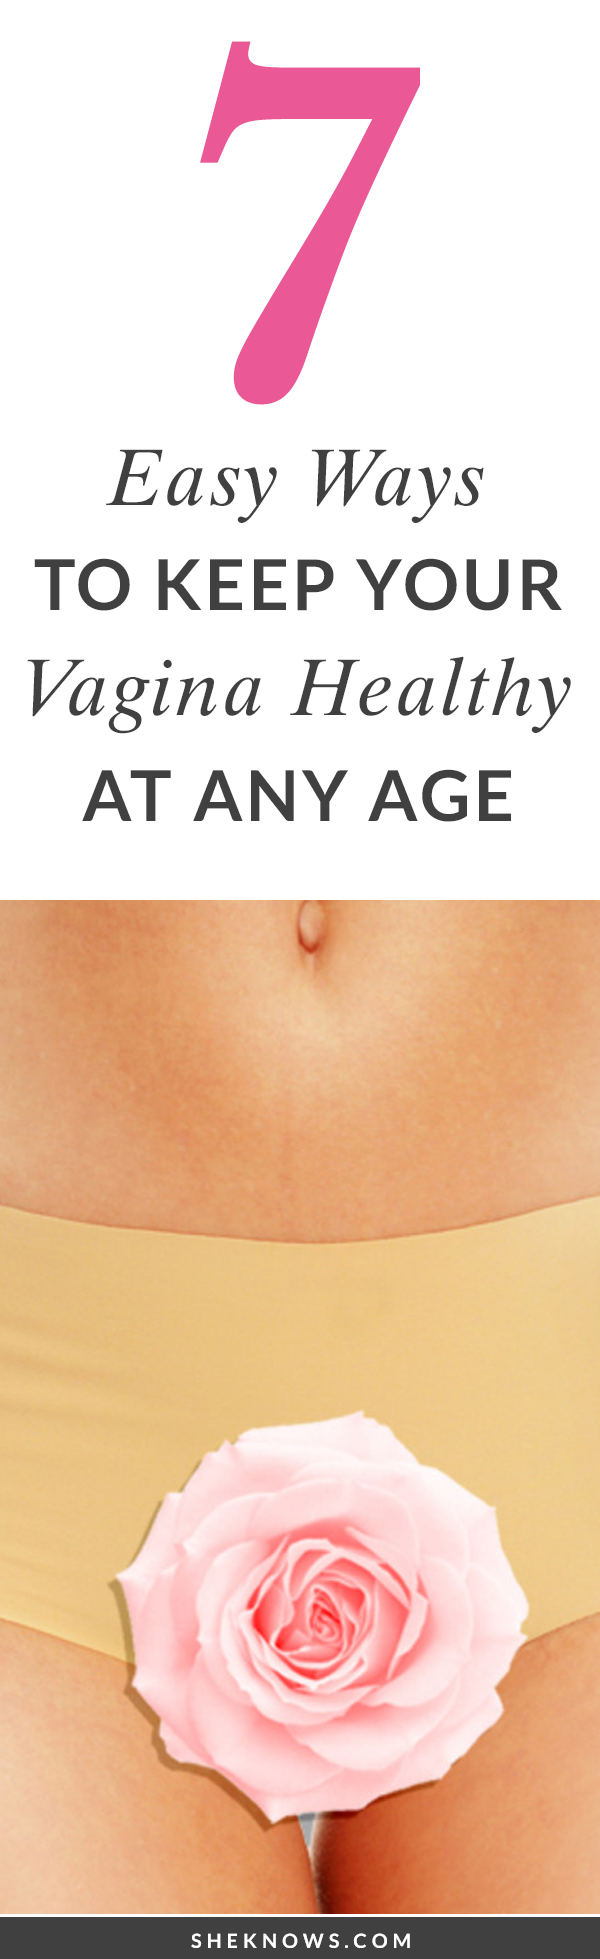 7 easy ways to keep your vagina healthy at any age